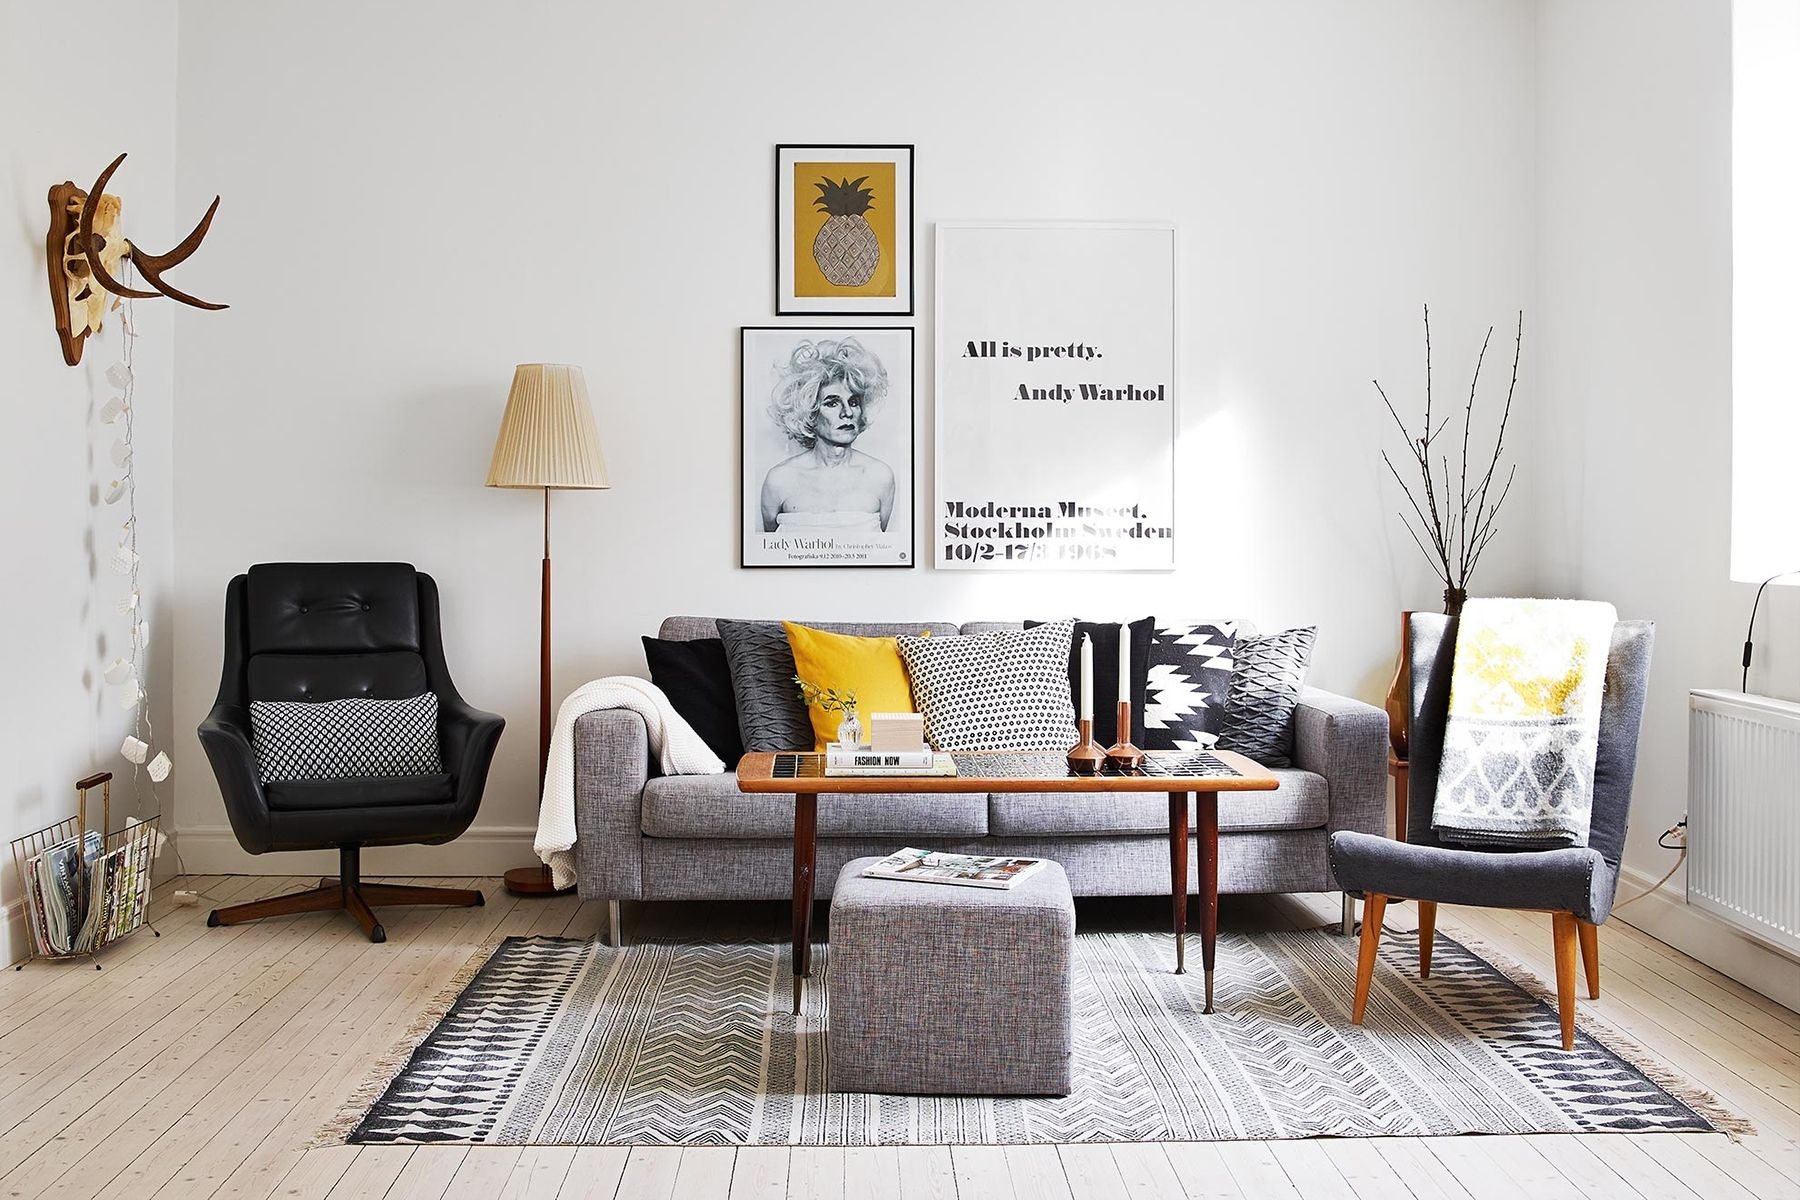 Sofa Vintage A Vendre Scandinavian Living Room With Grey Sofa Top 10 Tips For Adding